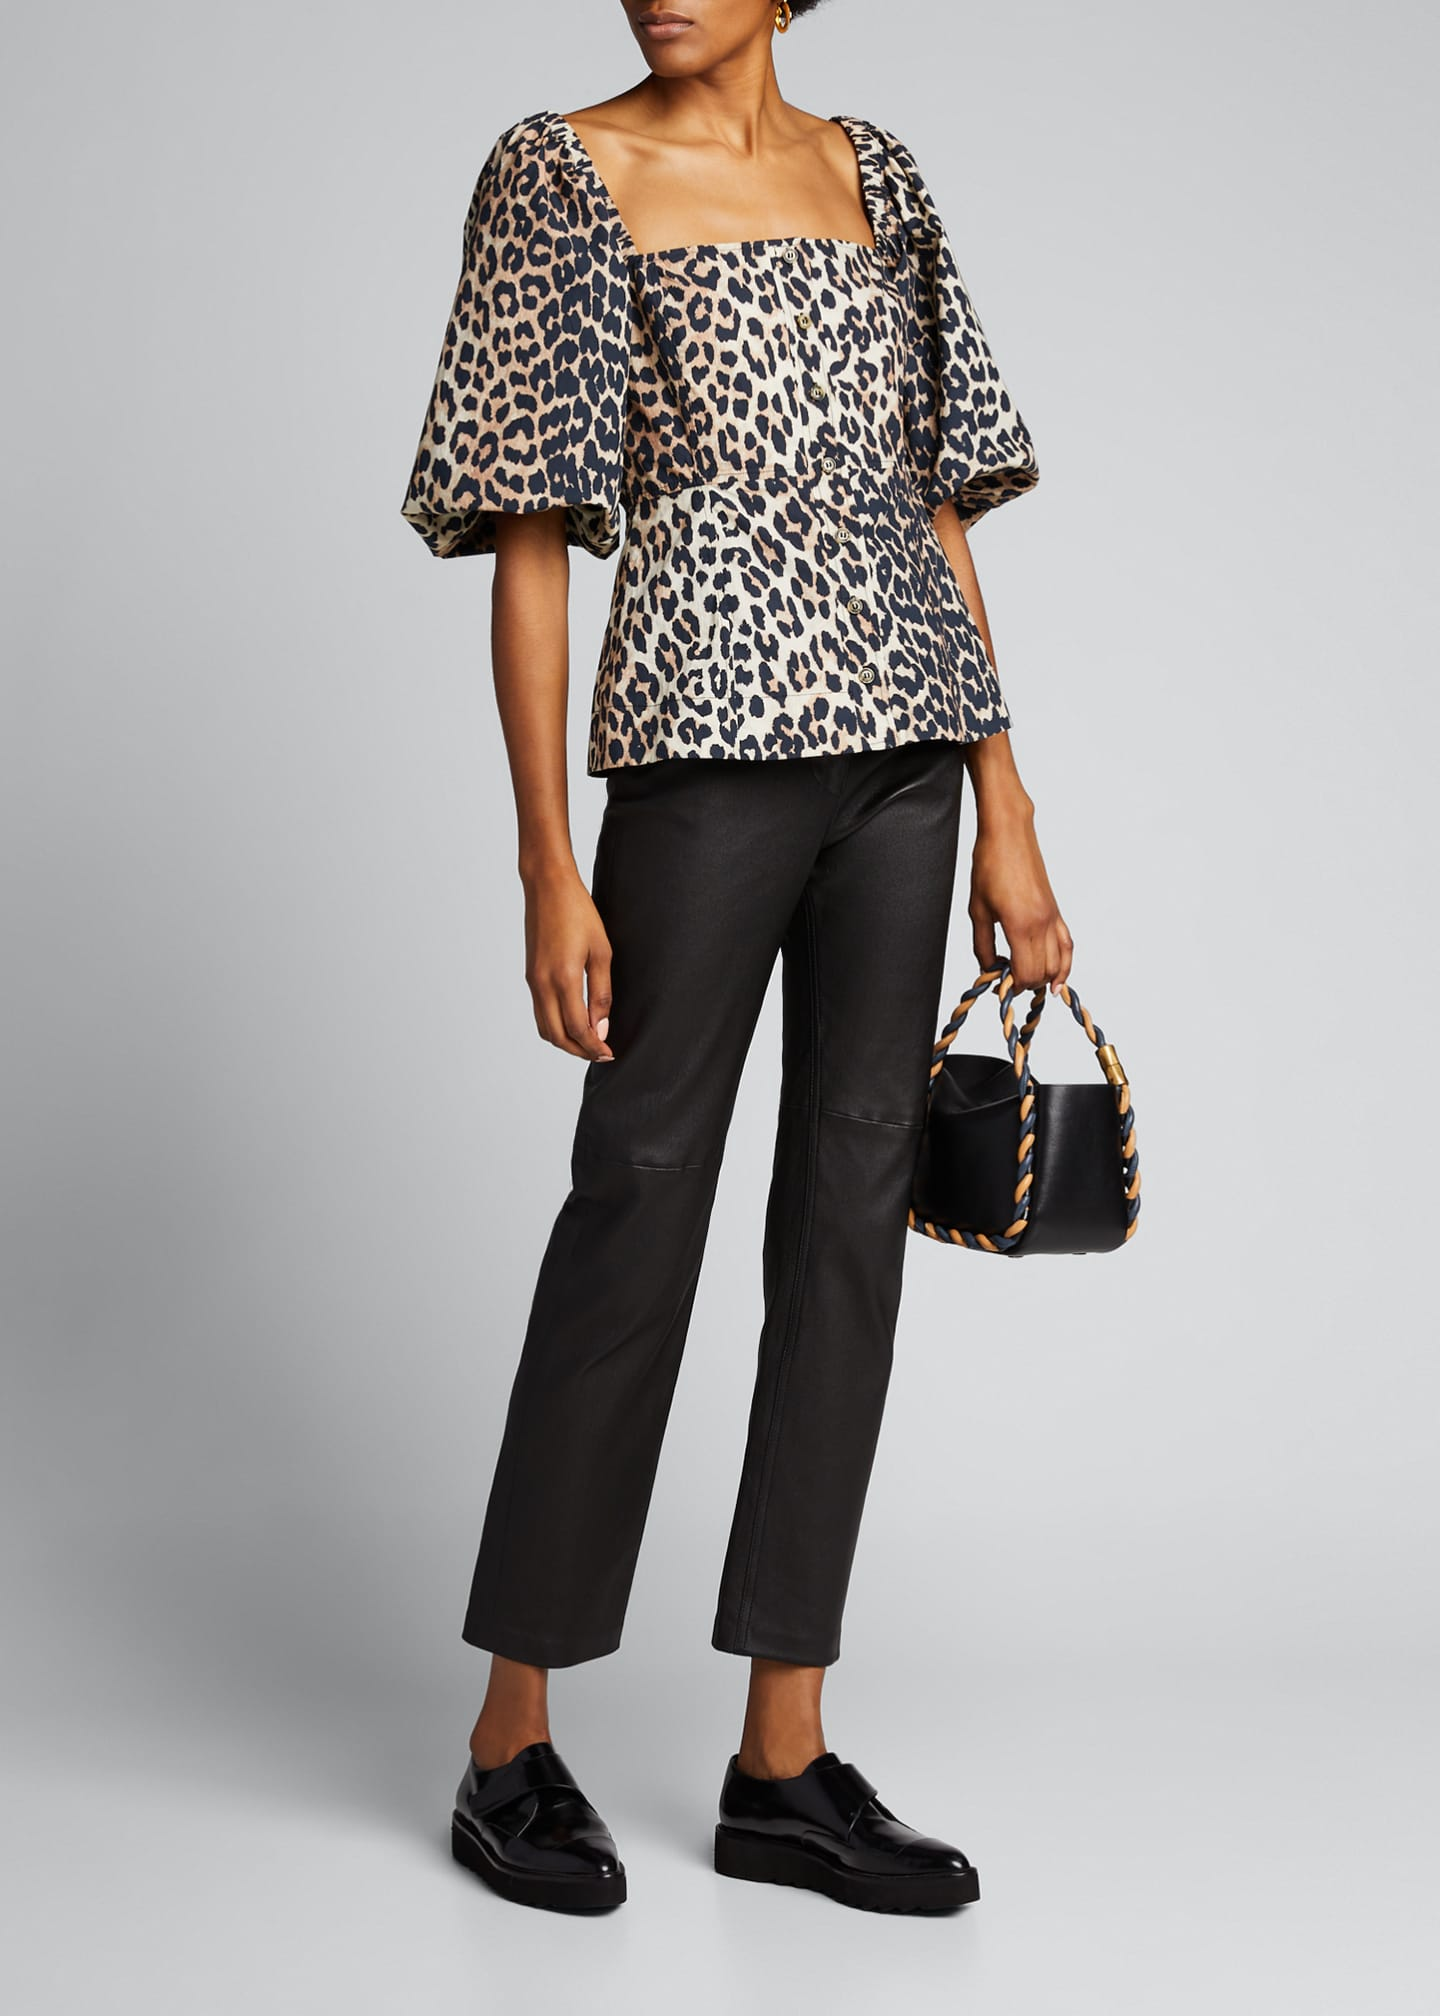 Image 1 of 5: Leopard-Print Poplin Button-Down Top